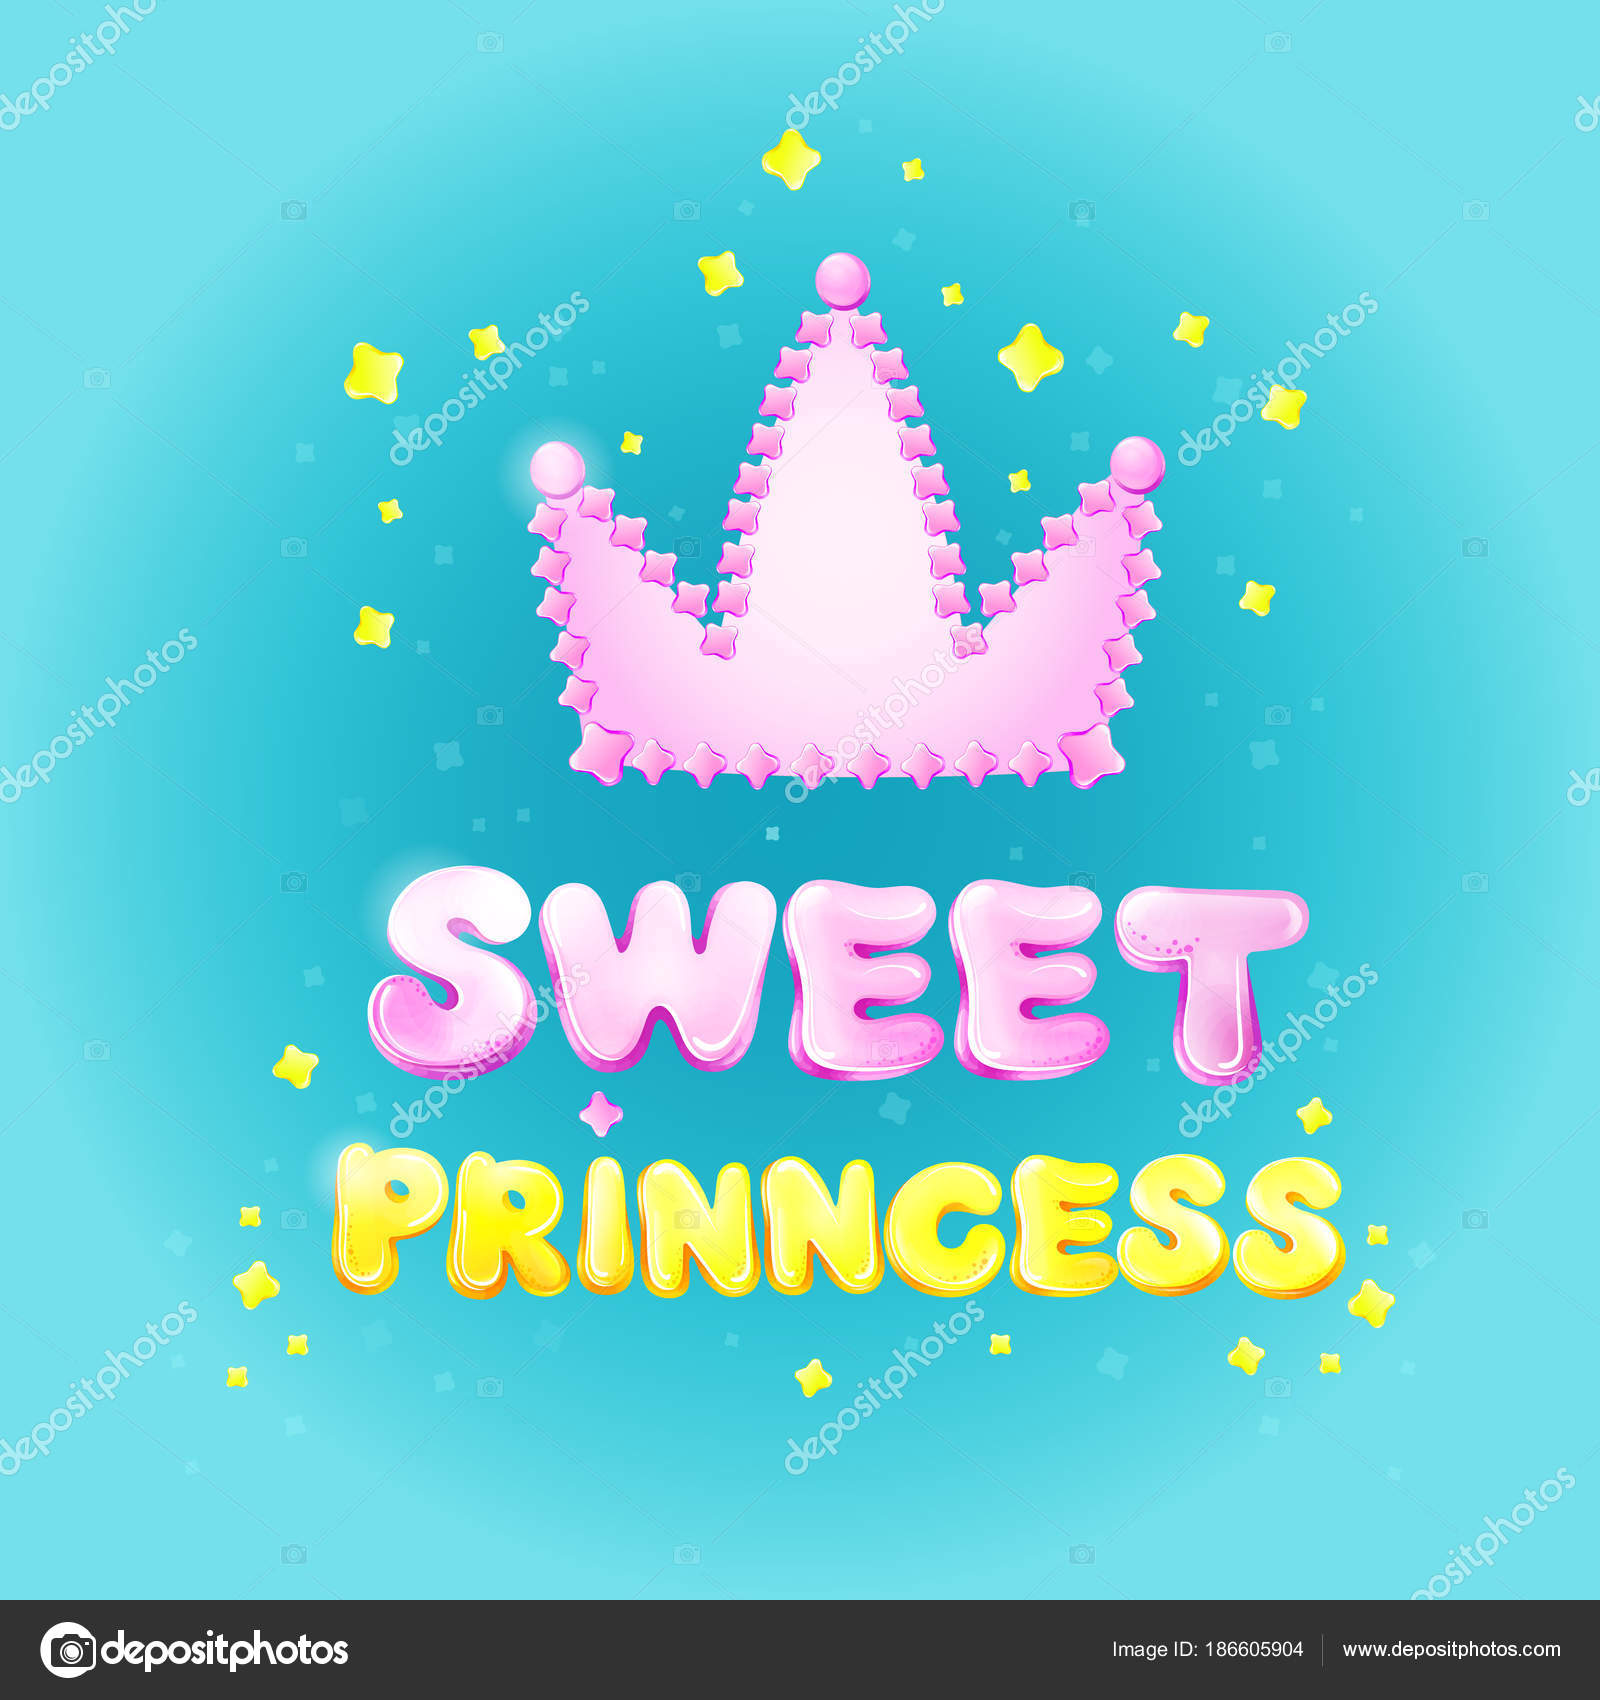 Sweet princess birthday greeting card vector illustration cartoon sweet princess birthday greeting card vector illustration cartoon design for girl holiday or party celebration invitation kristyandbryce Images